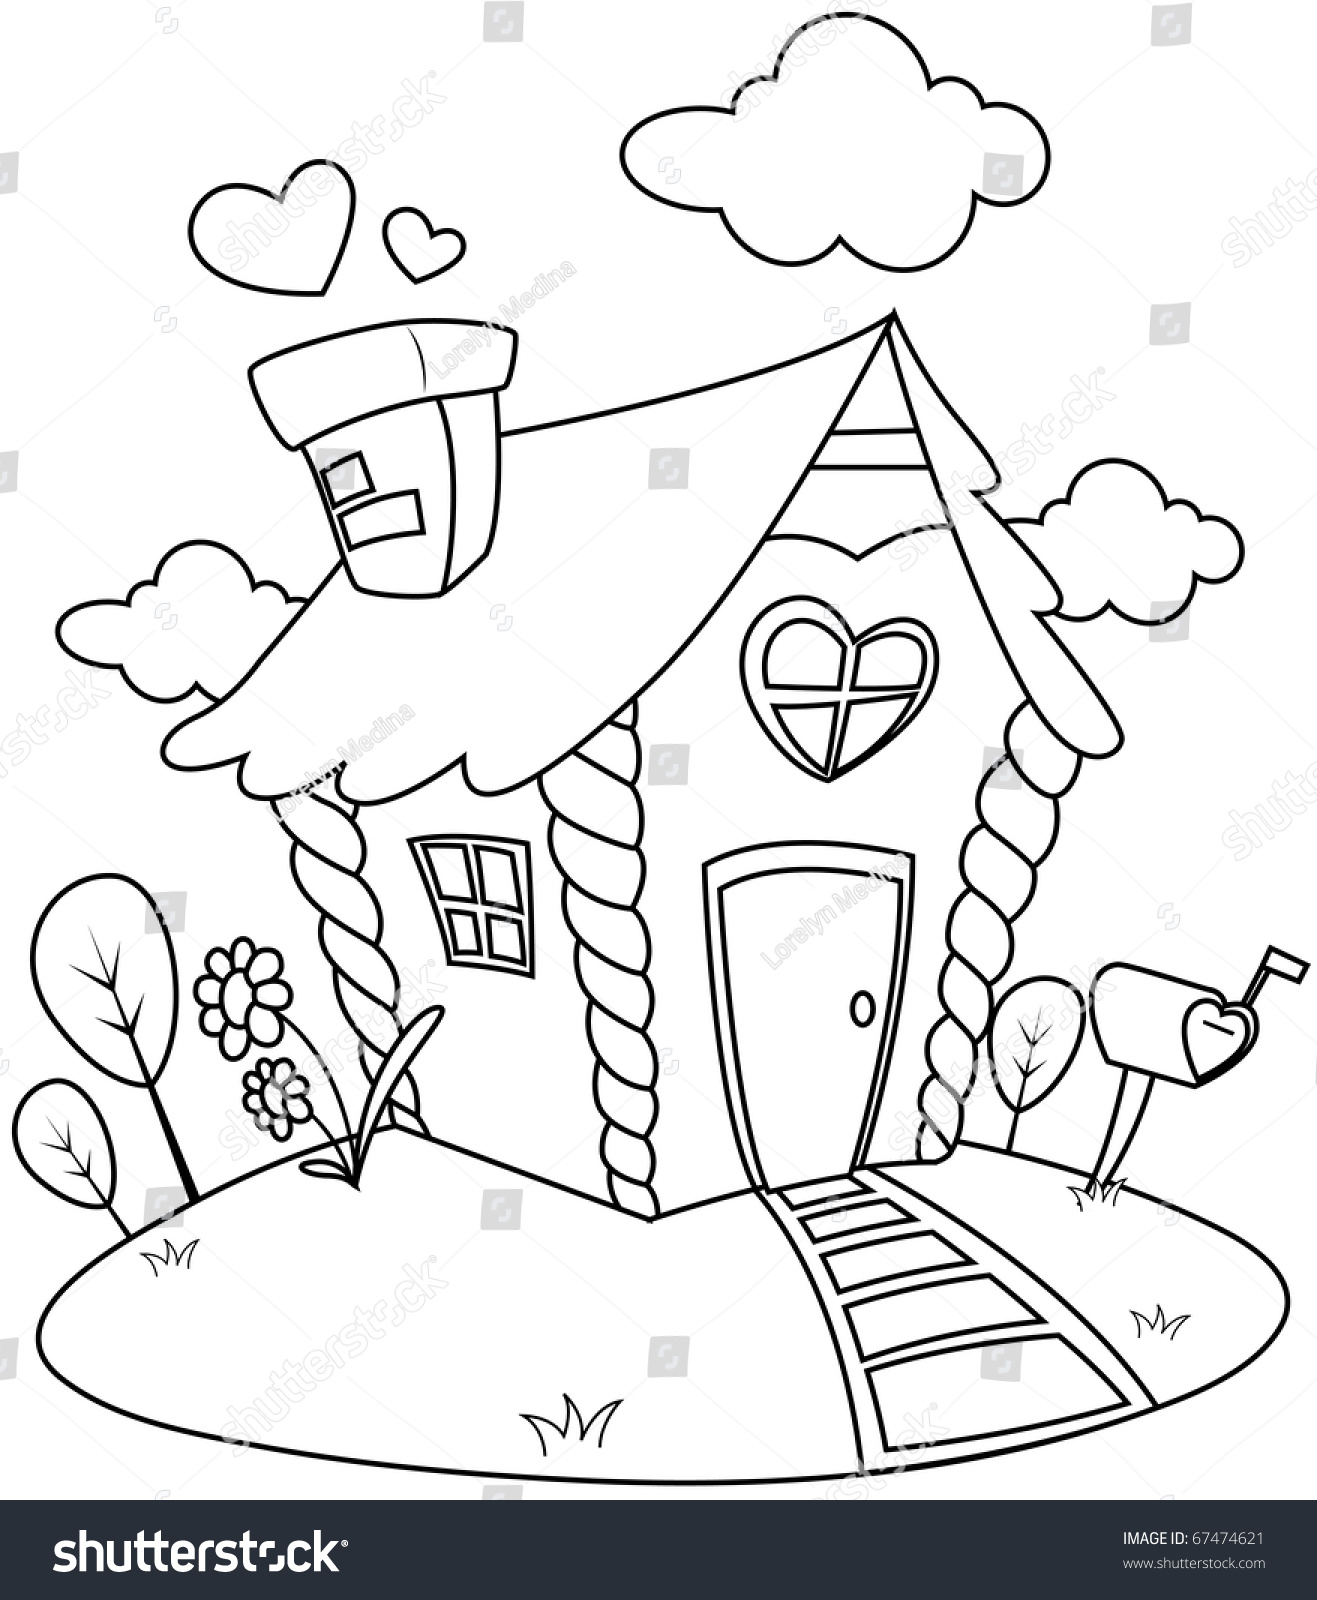 Line Art Illustration Of A Small House With Valentine Theme Coloring Page